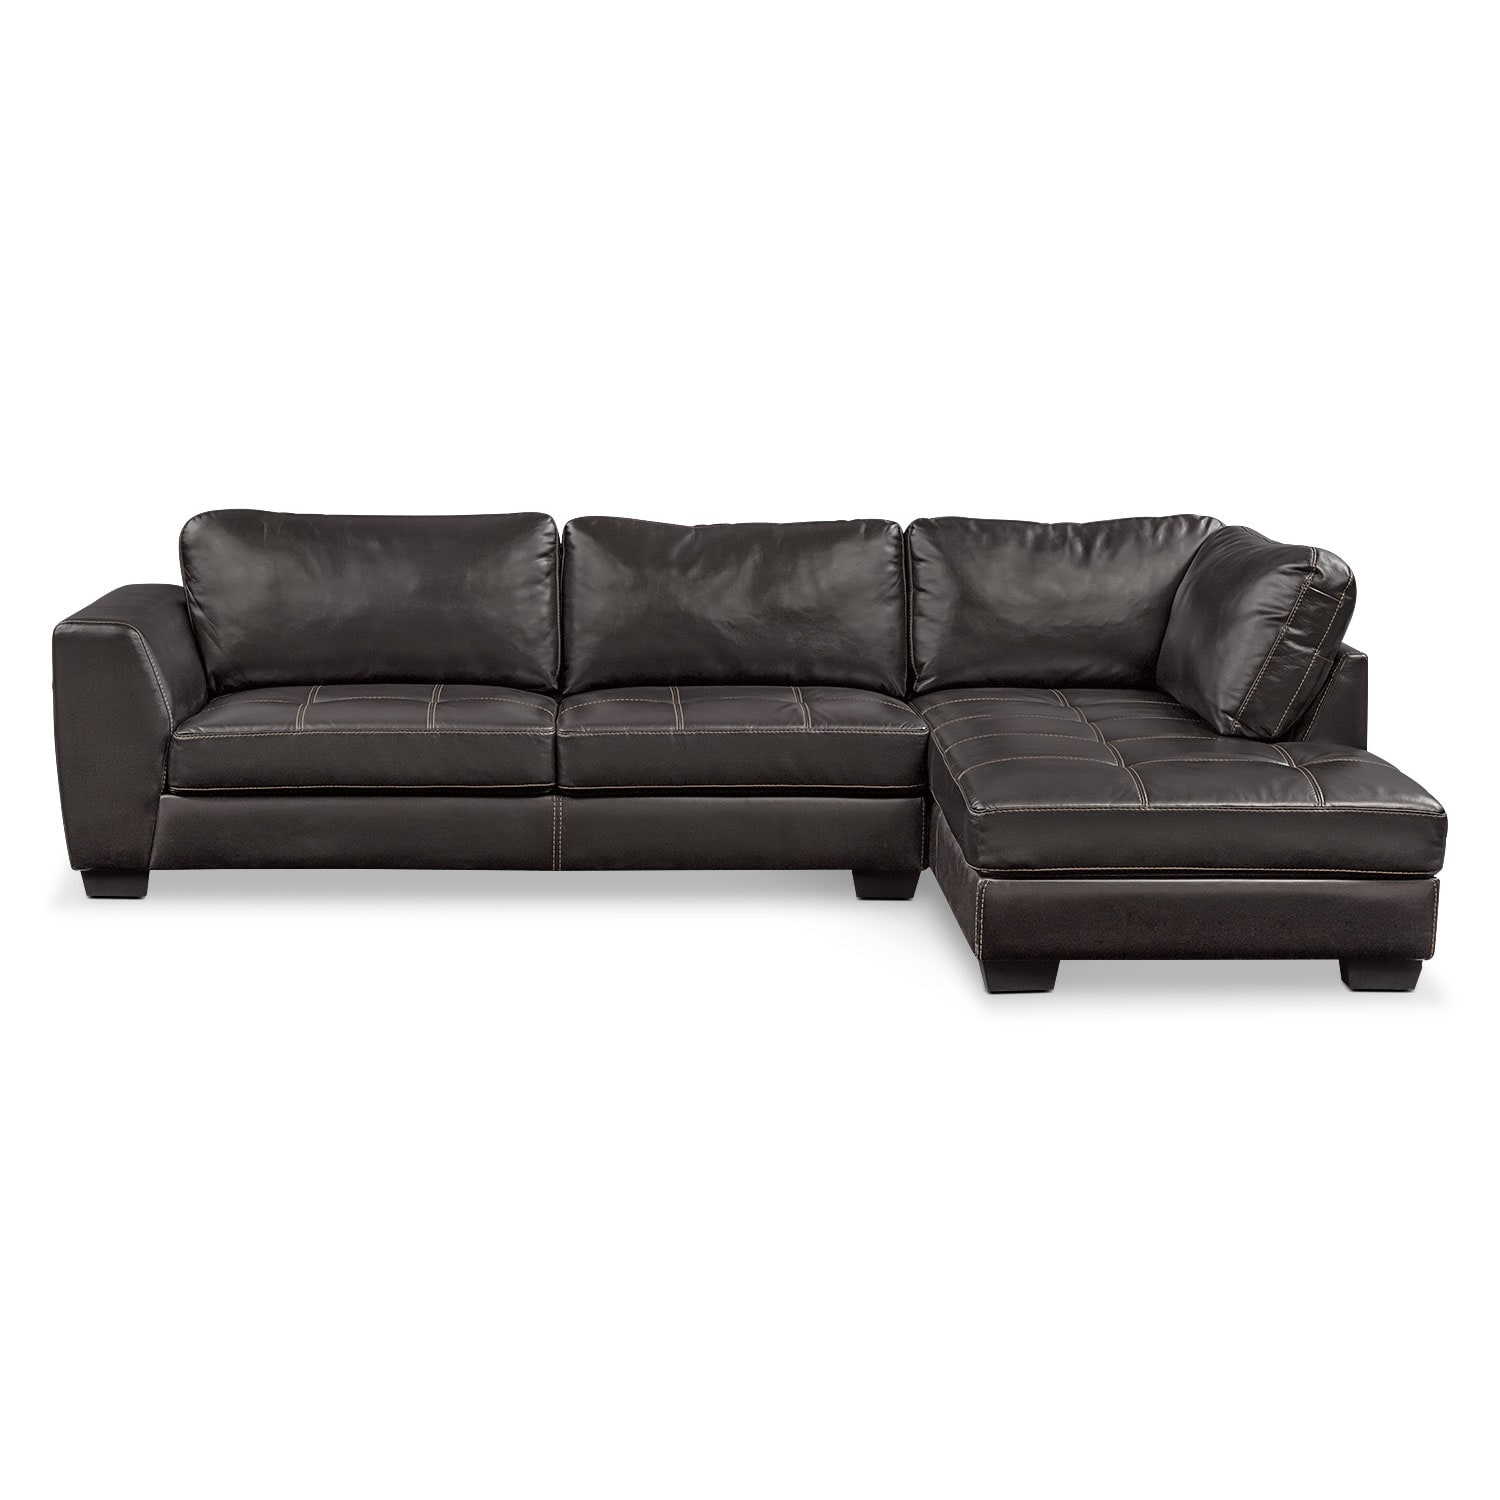 Santana 2-Piece Sectional with Right-Facing Chaise - Black | Value ...